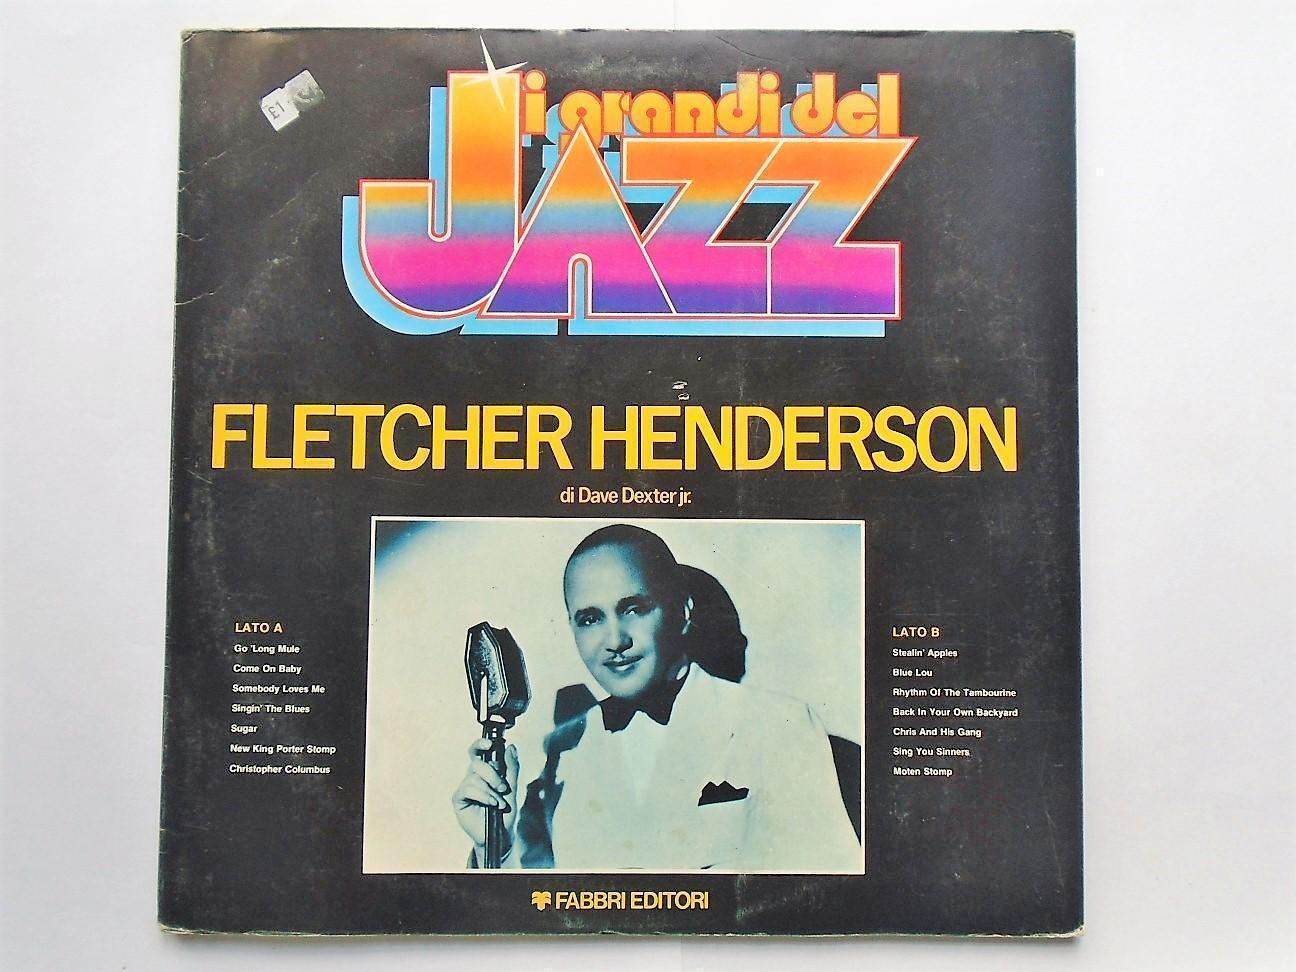 an introduction to the coleman hawkins with the fletcher henderson band